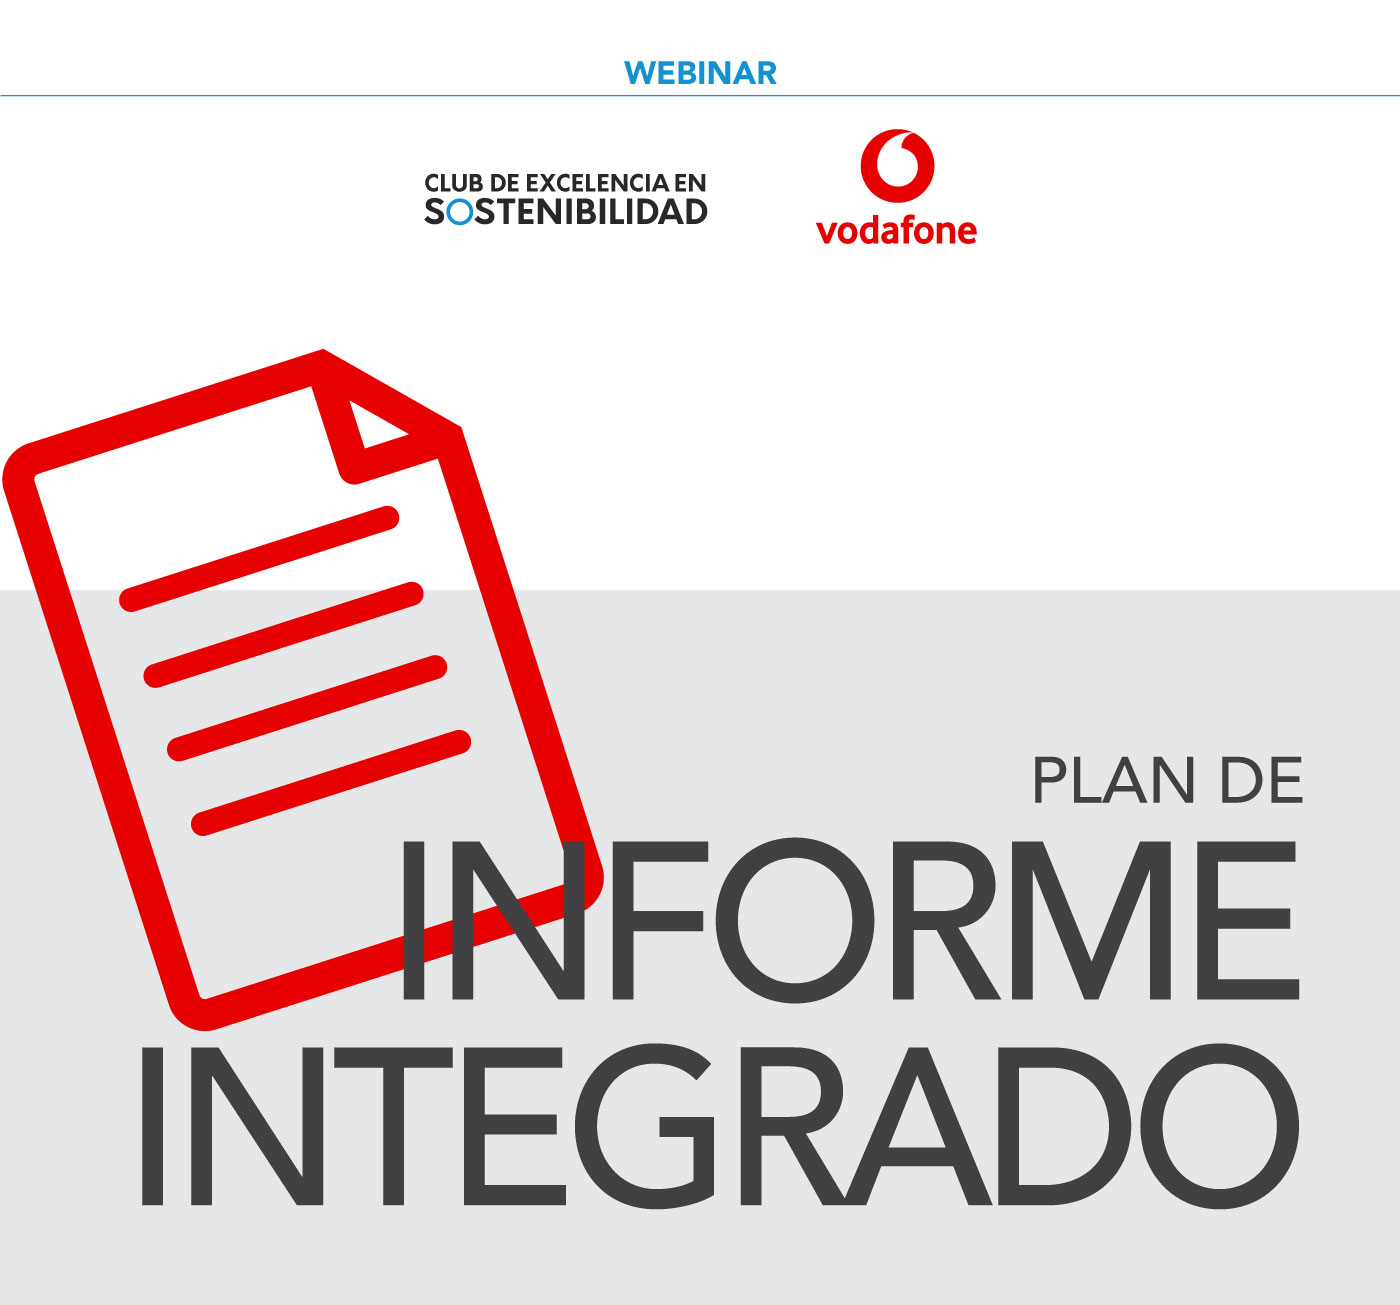 Plan de Informe Integrado. Webinar